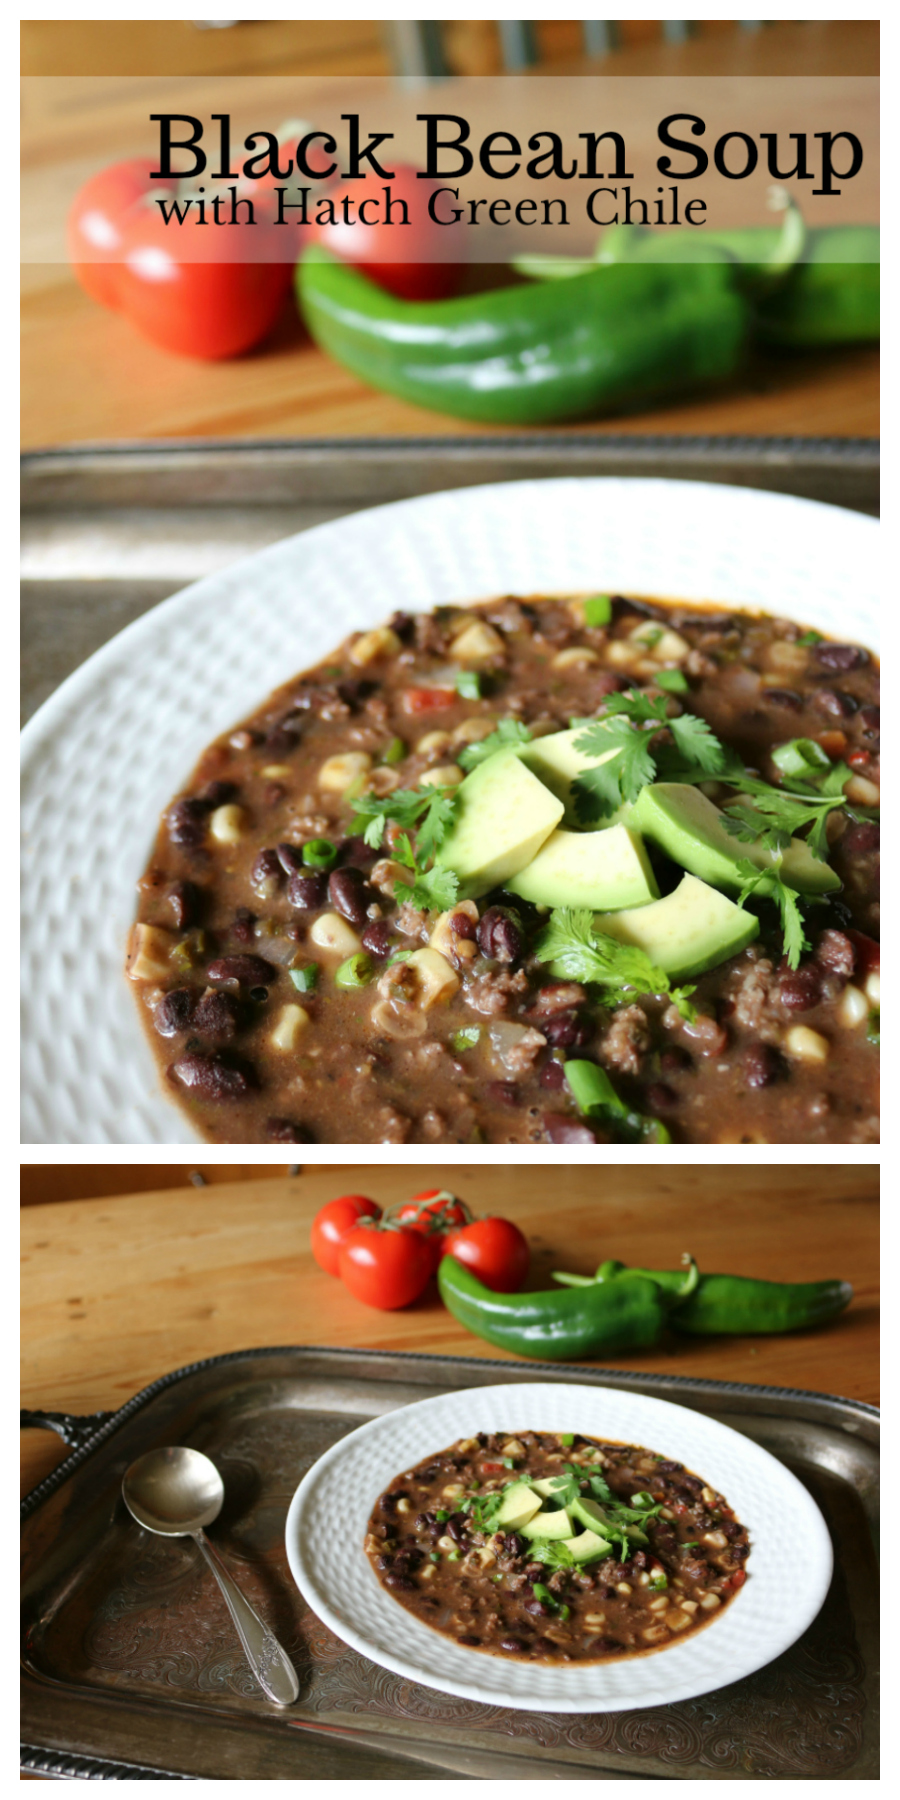 Southwestern Black Bean Soup with Hatch Chile CeceliasGoodStuff.com